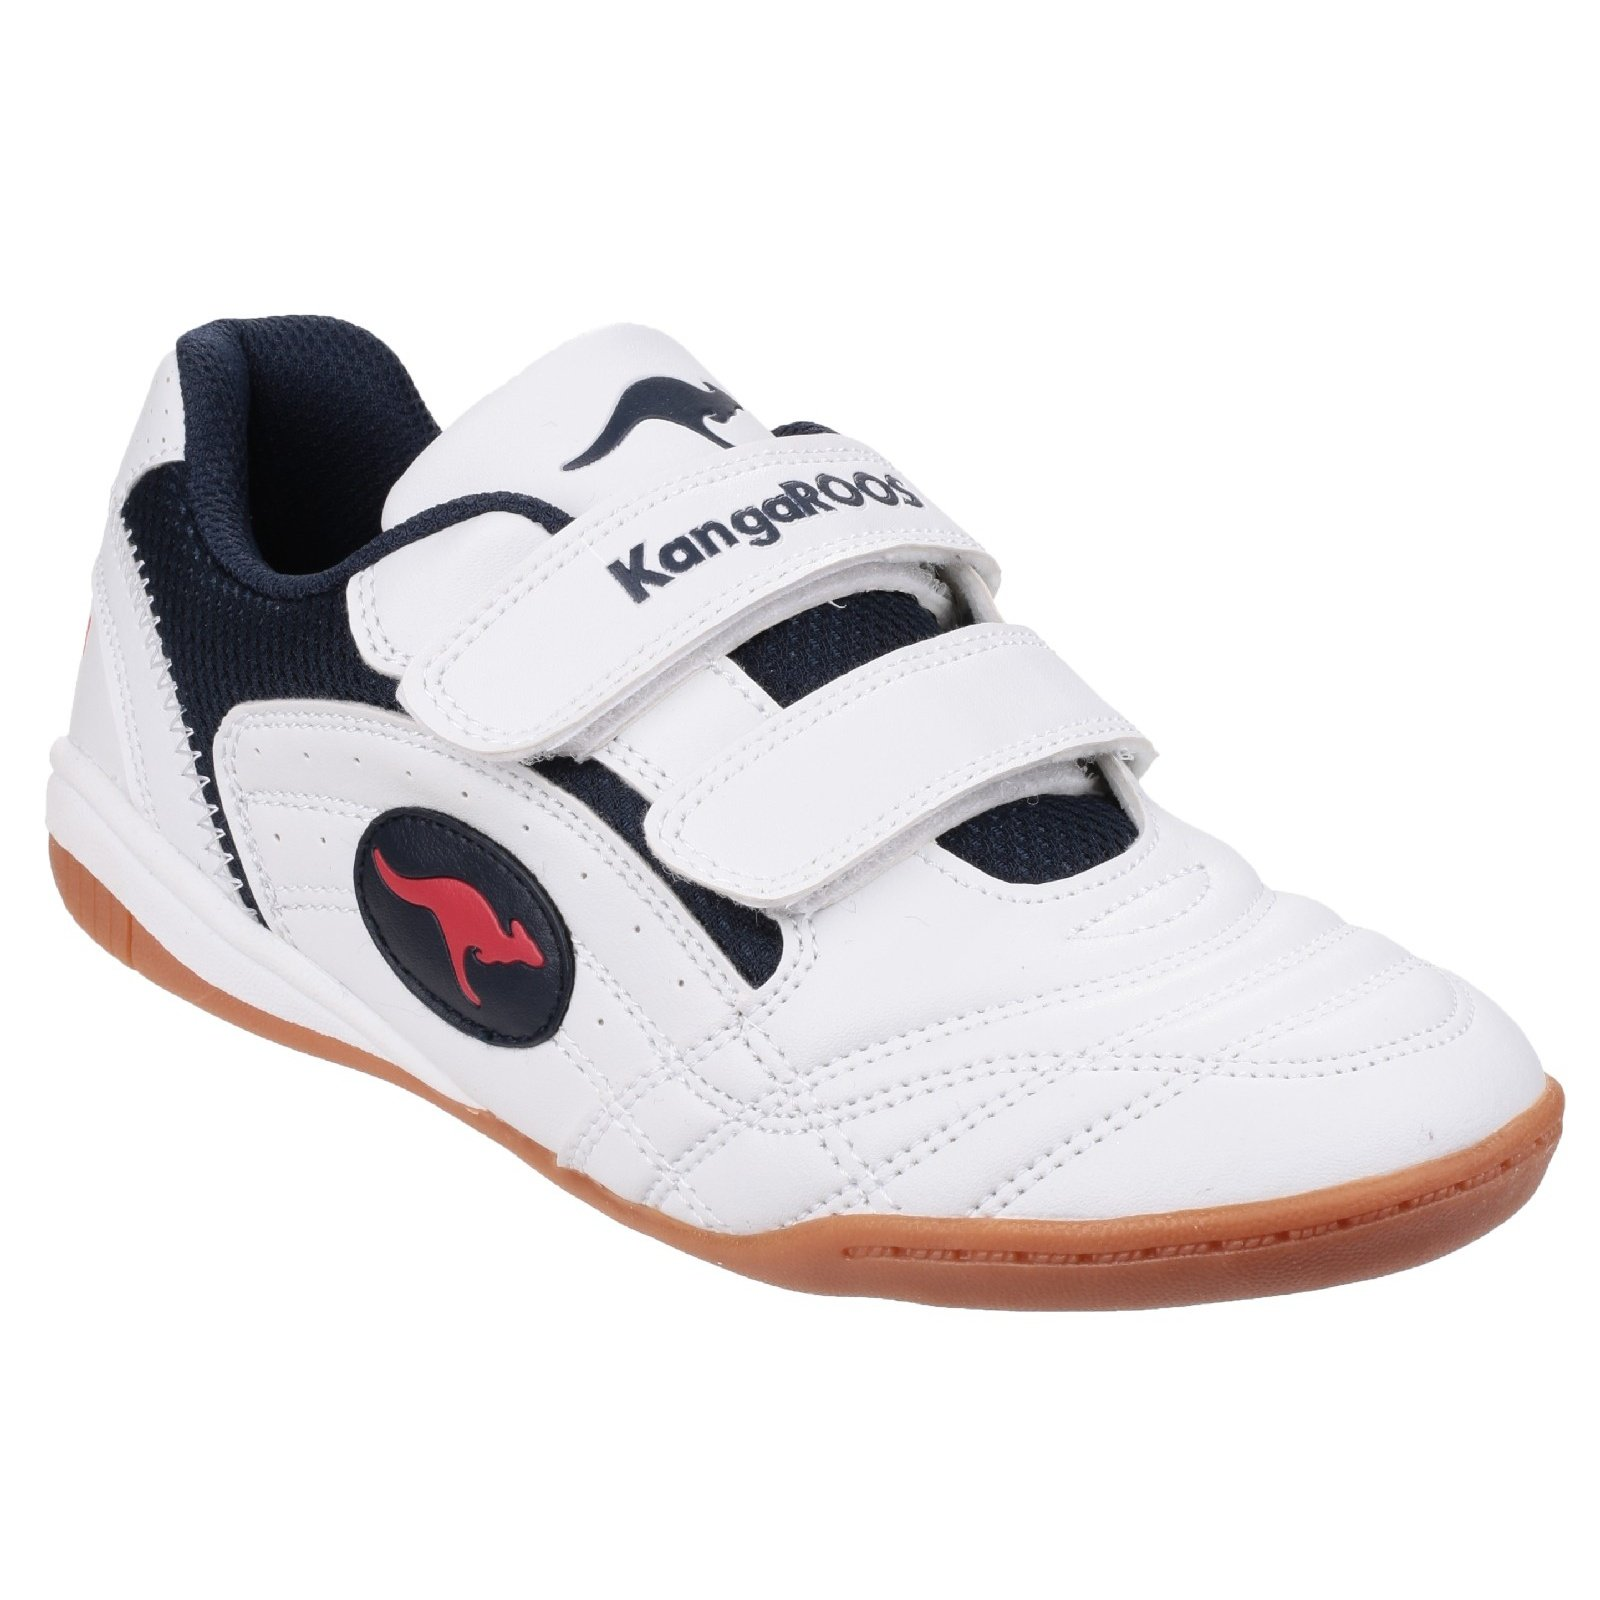 KangaROOS Childrens/Boys Backyard KR10704 Sneakers (12 US Junior) (White/Navy/Red)